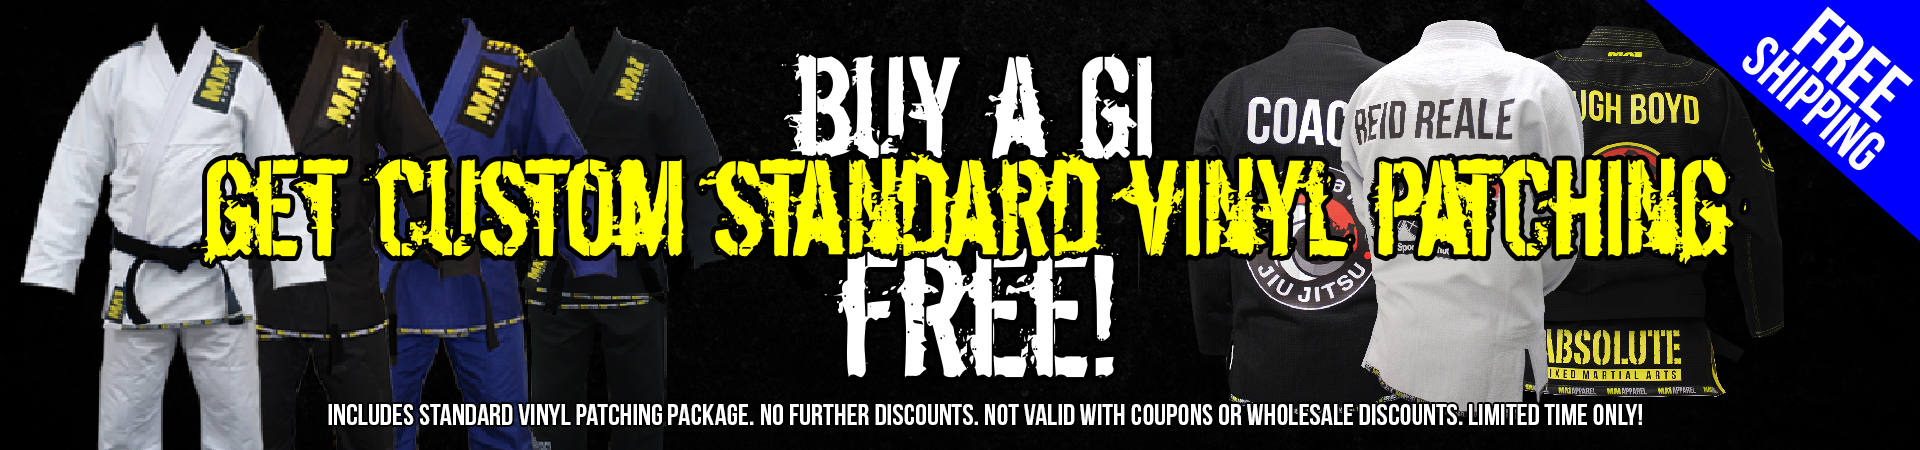 Buy a Gi and Get Custom Standard Vinyl Patching Free!